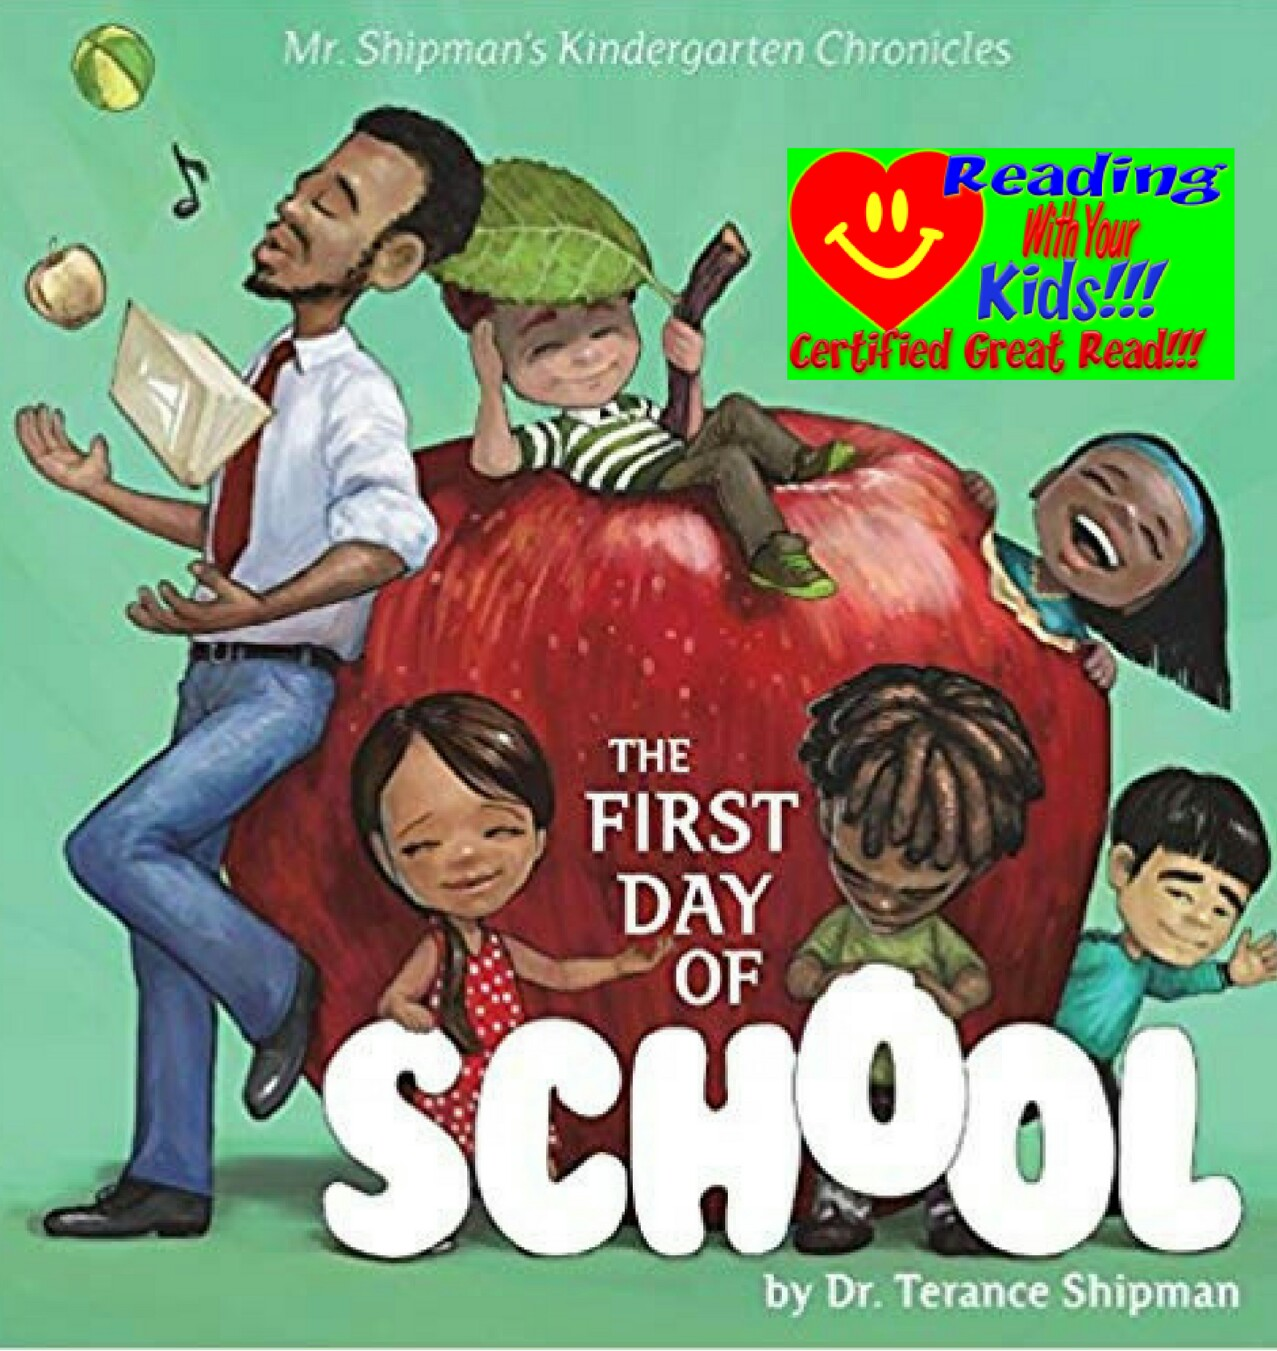 The First Day of School by Dr. Terance Shipman: #RWYK Great Read Certified